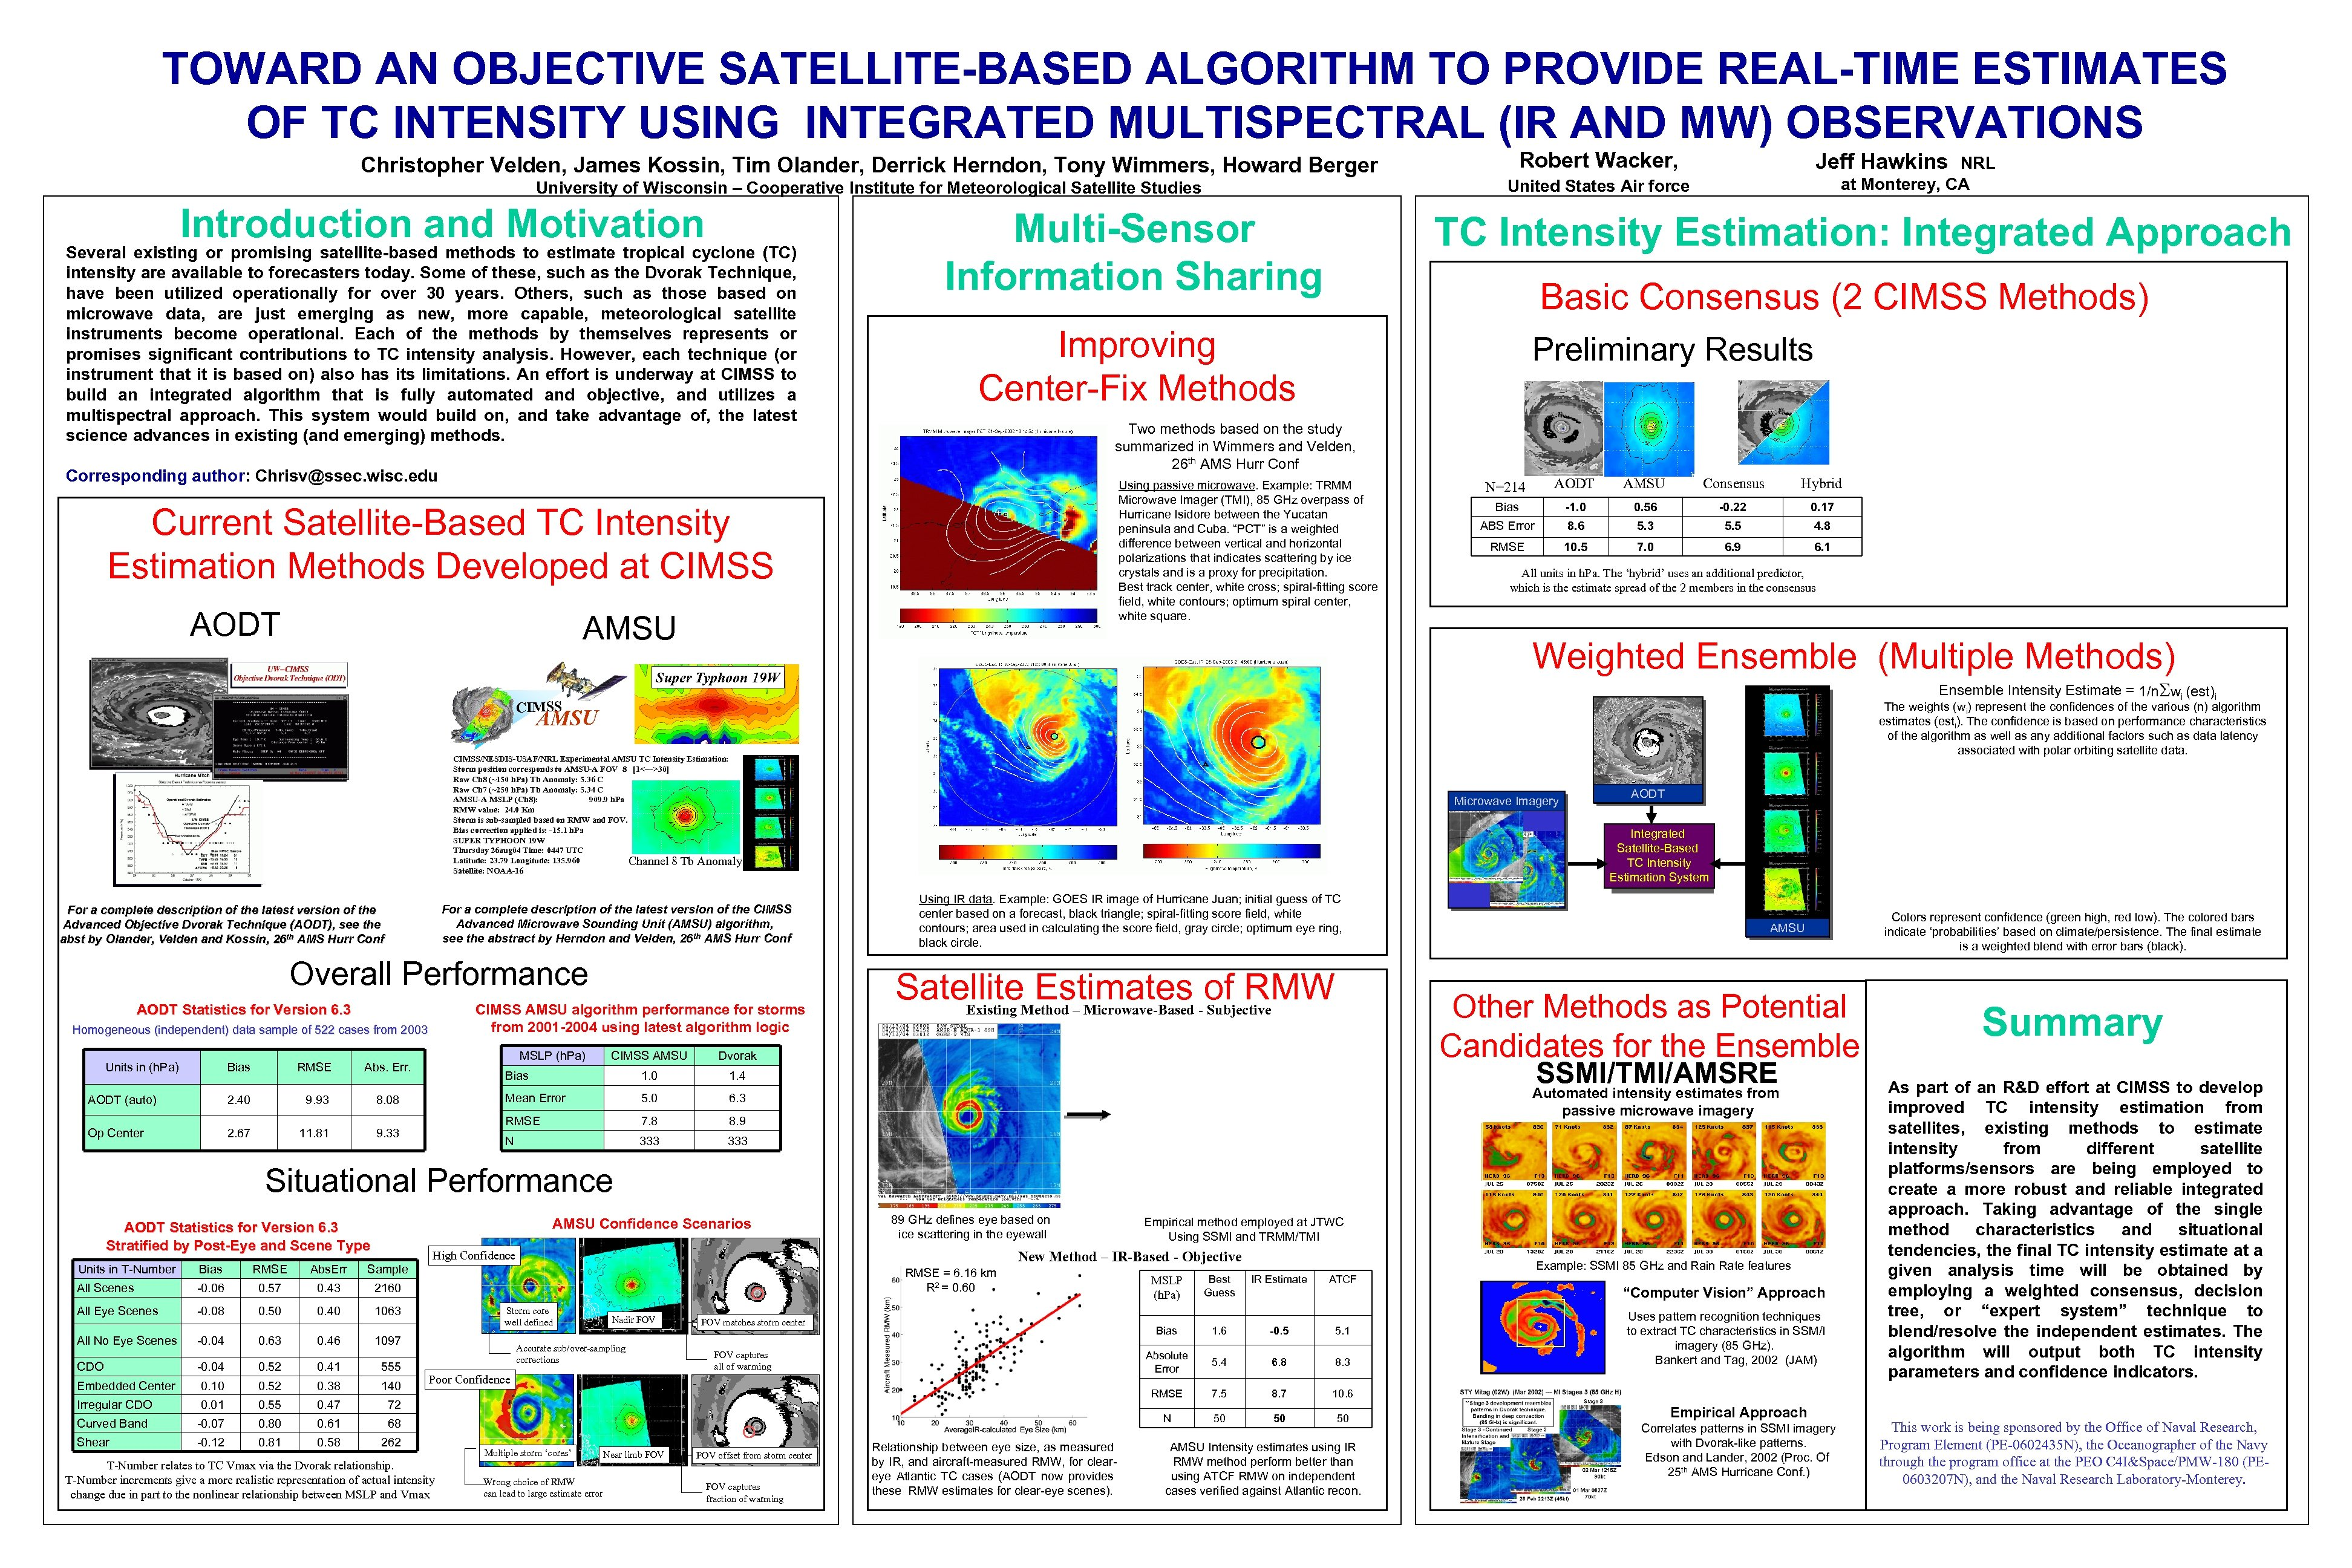 TOWARD AN OBJECTIVE SATELLITE-BASED ALGORITHM TO PROVIDE REAL-TIME ESTIMATES OF TC INTENSITY USING INTEGRATED